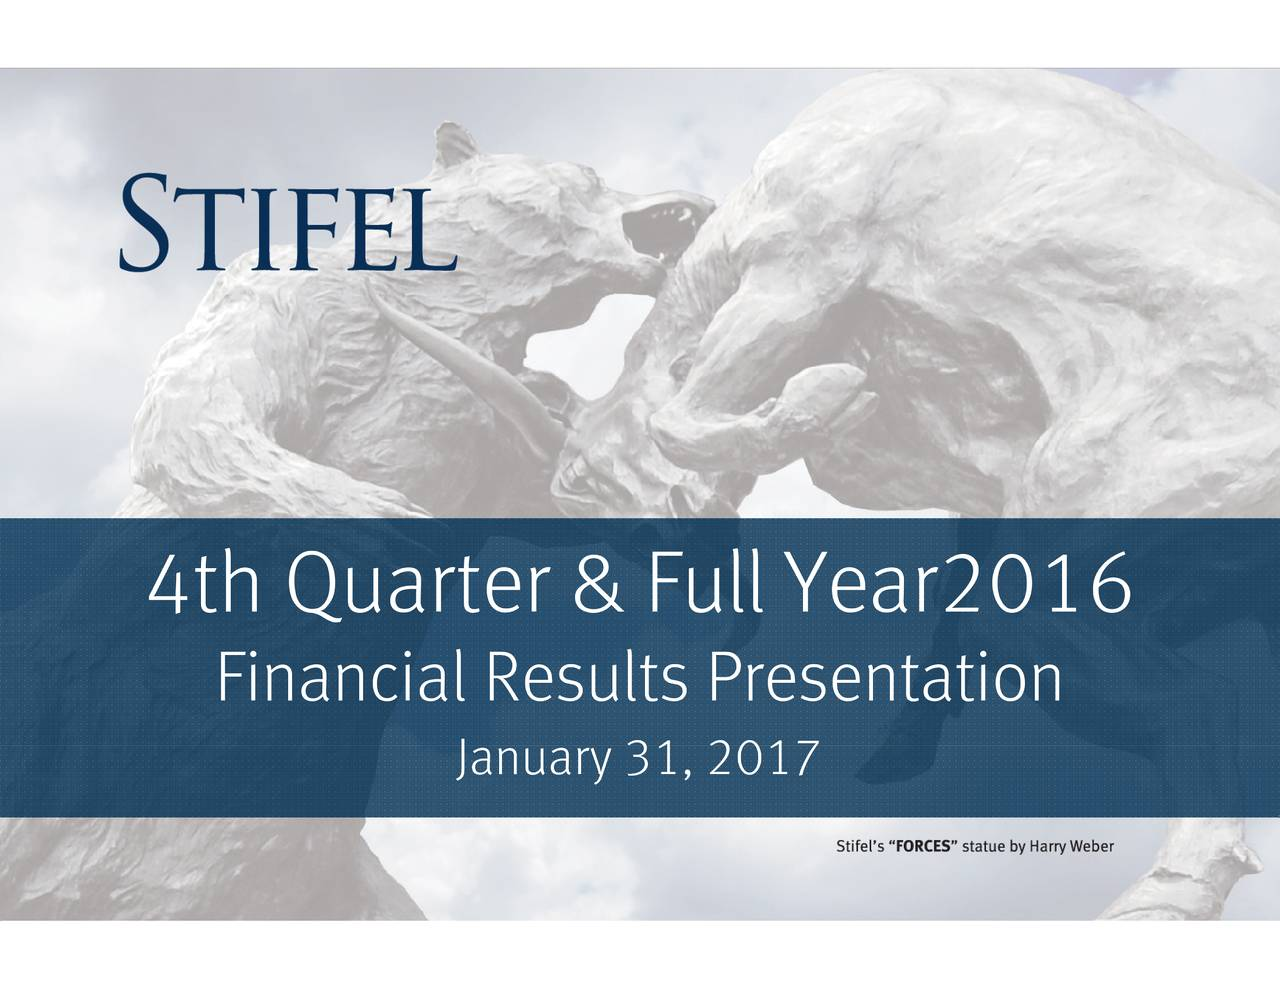 Financial Results Presentation 4th Quarter & Full Year2016